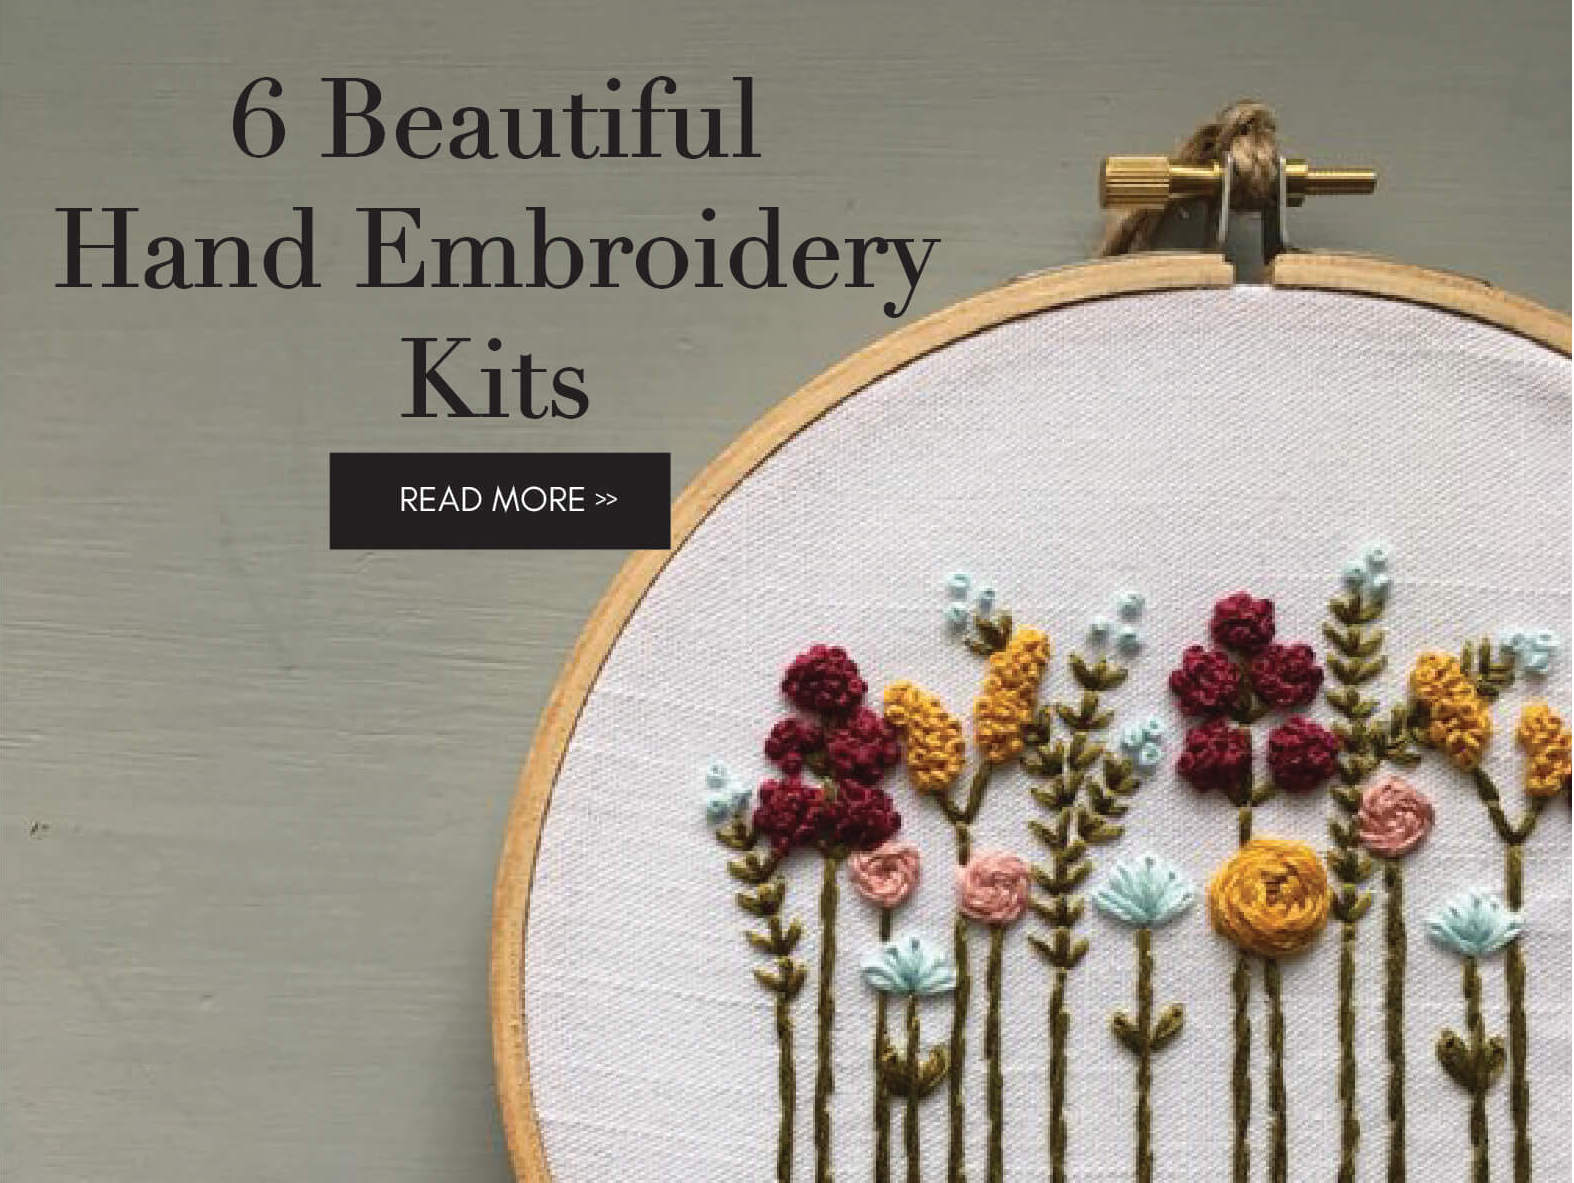 6 Beautiful Hand Embroidery Kits